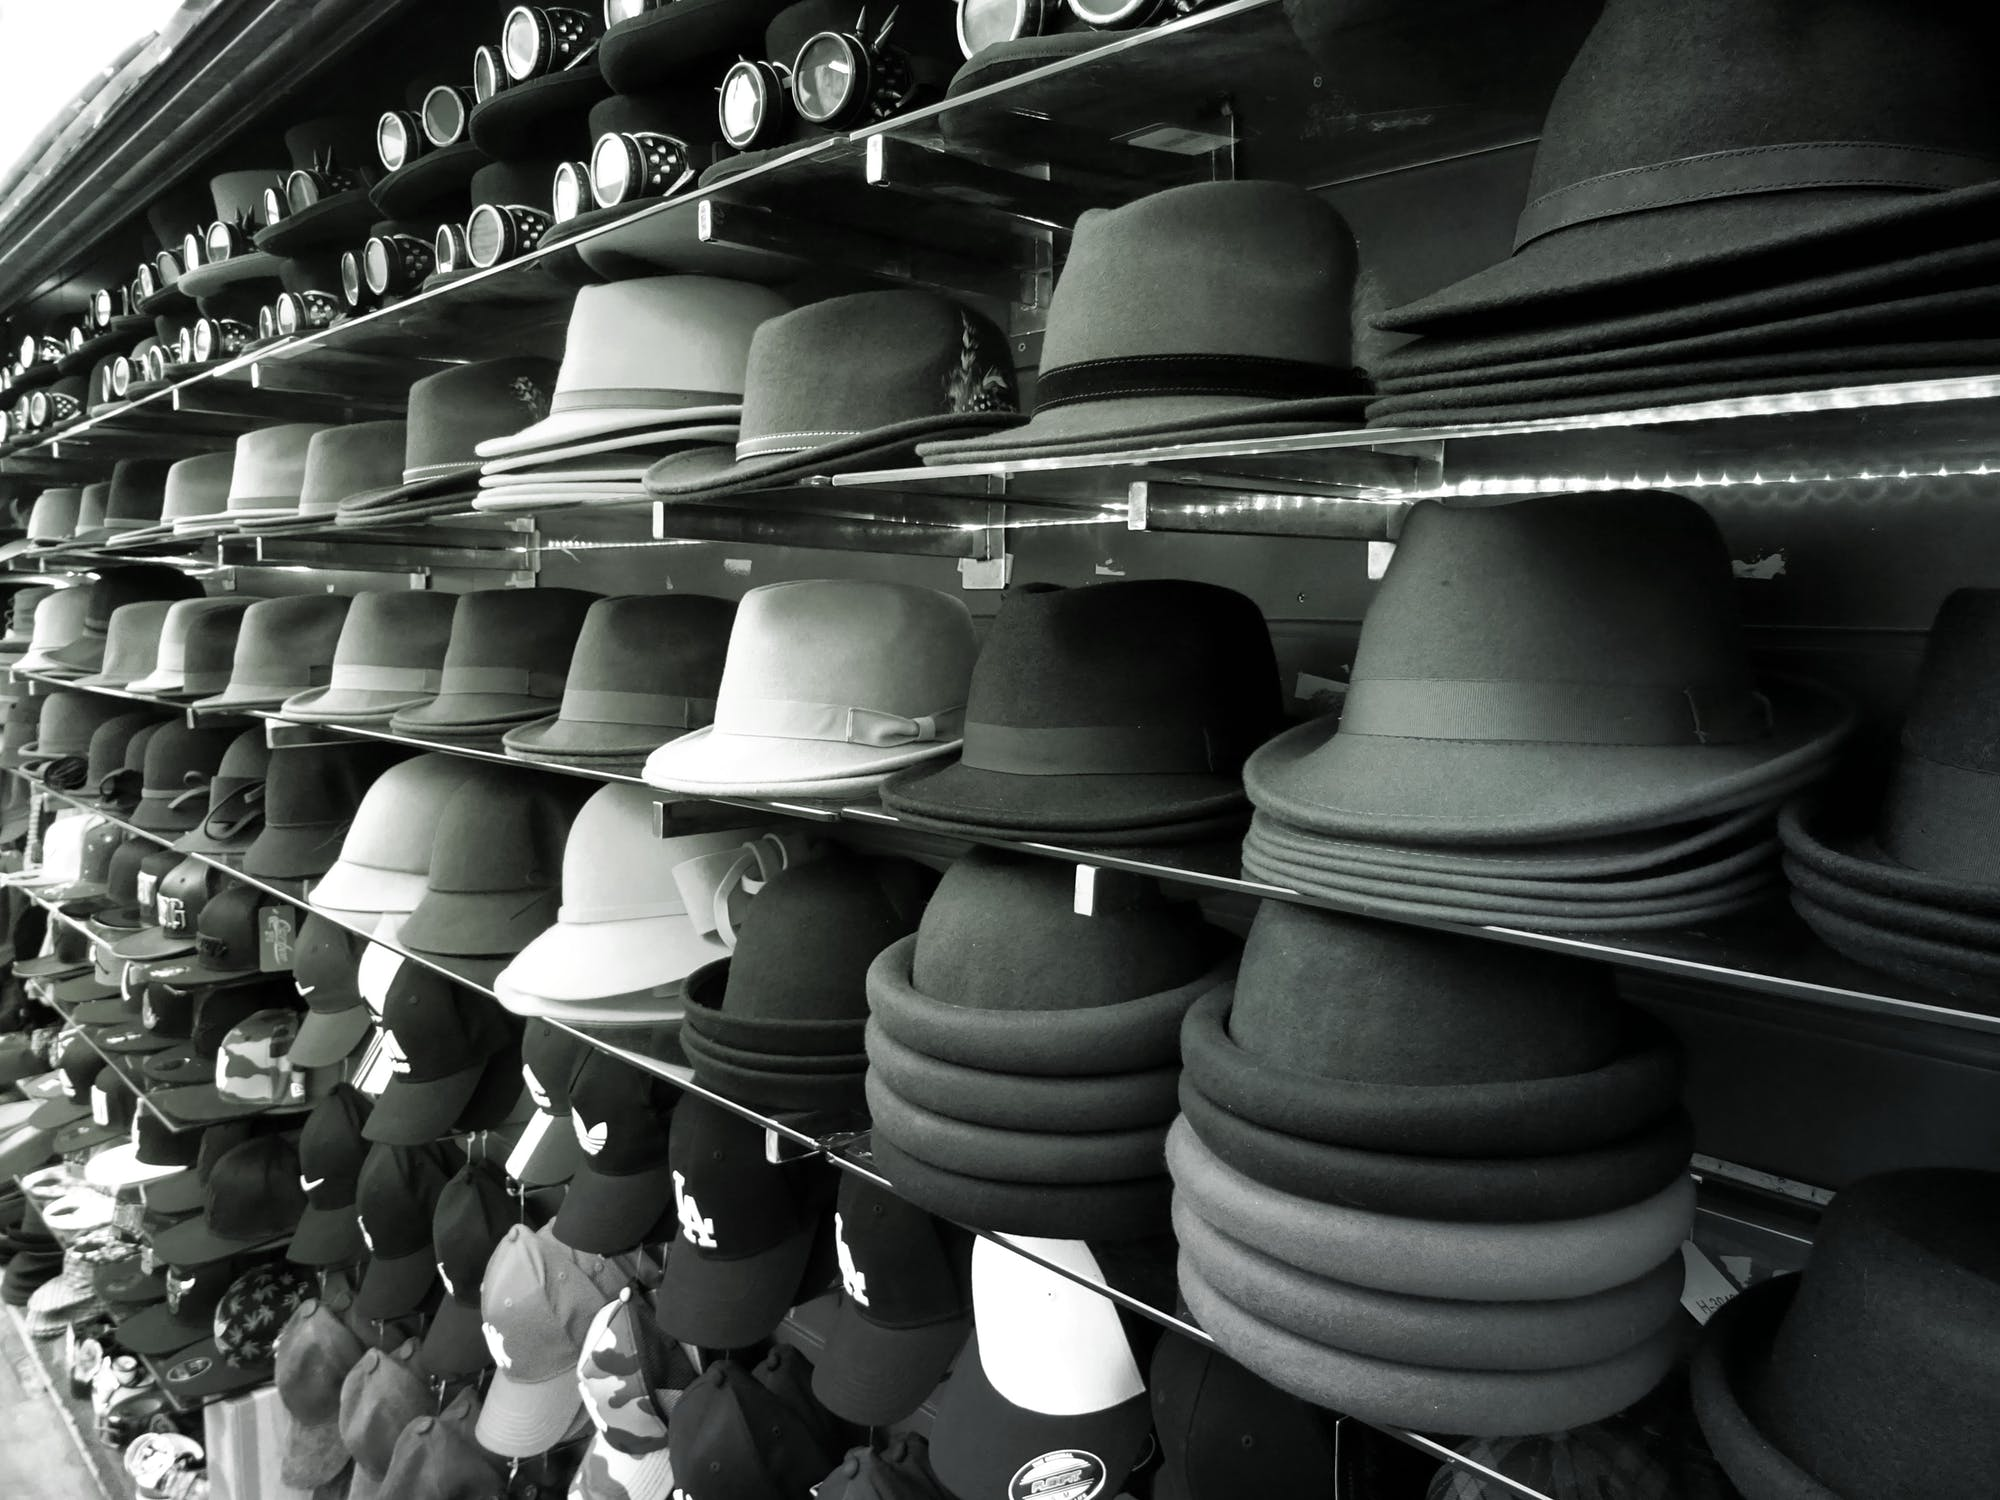 b3f8298b9c3 The Many Hats I m Wearing as a Founder – The Business Behind jOOQ